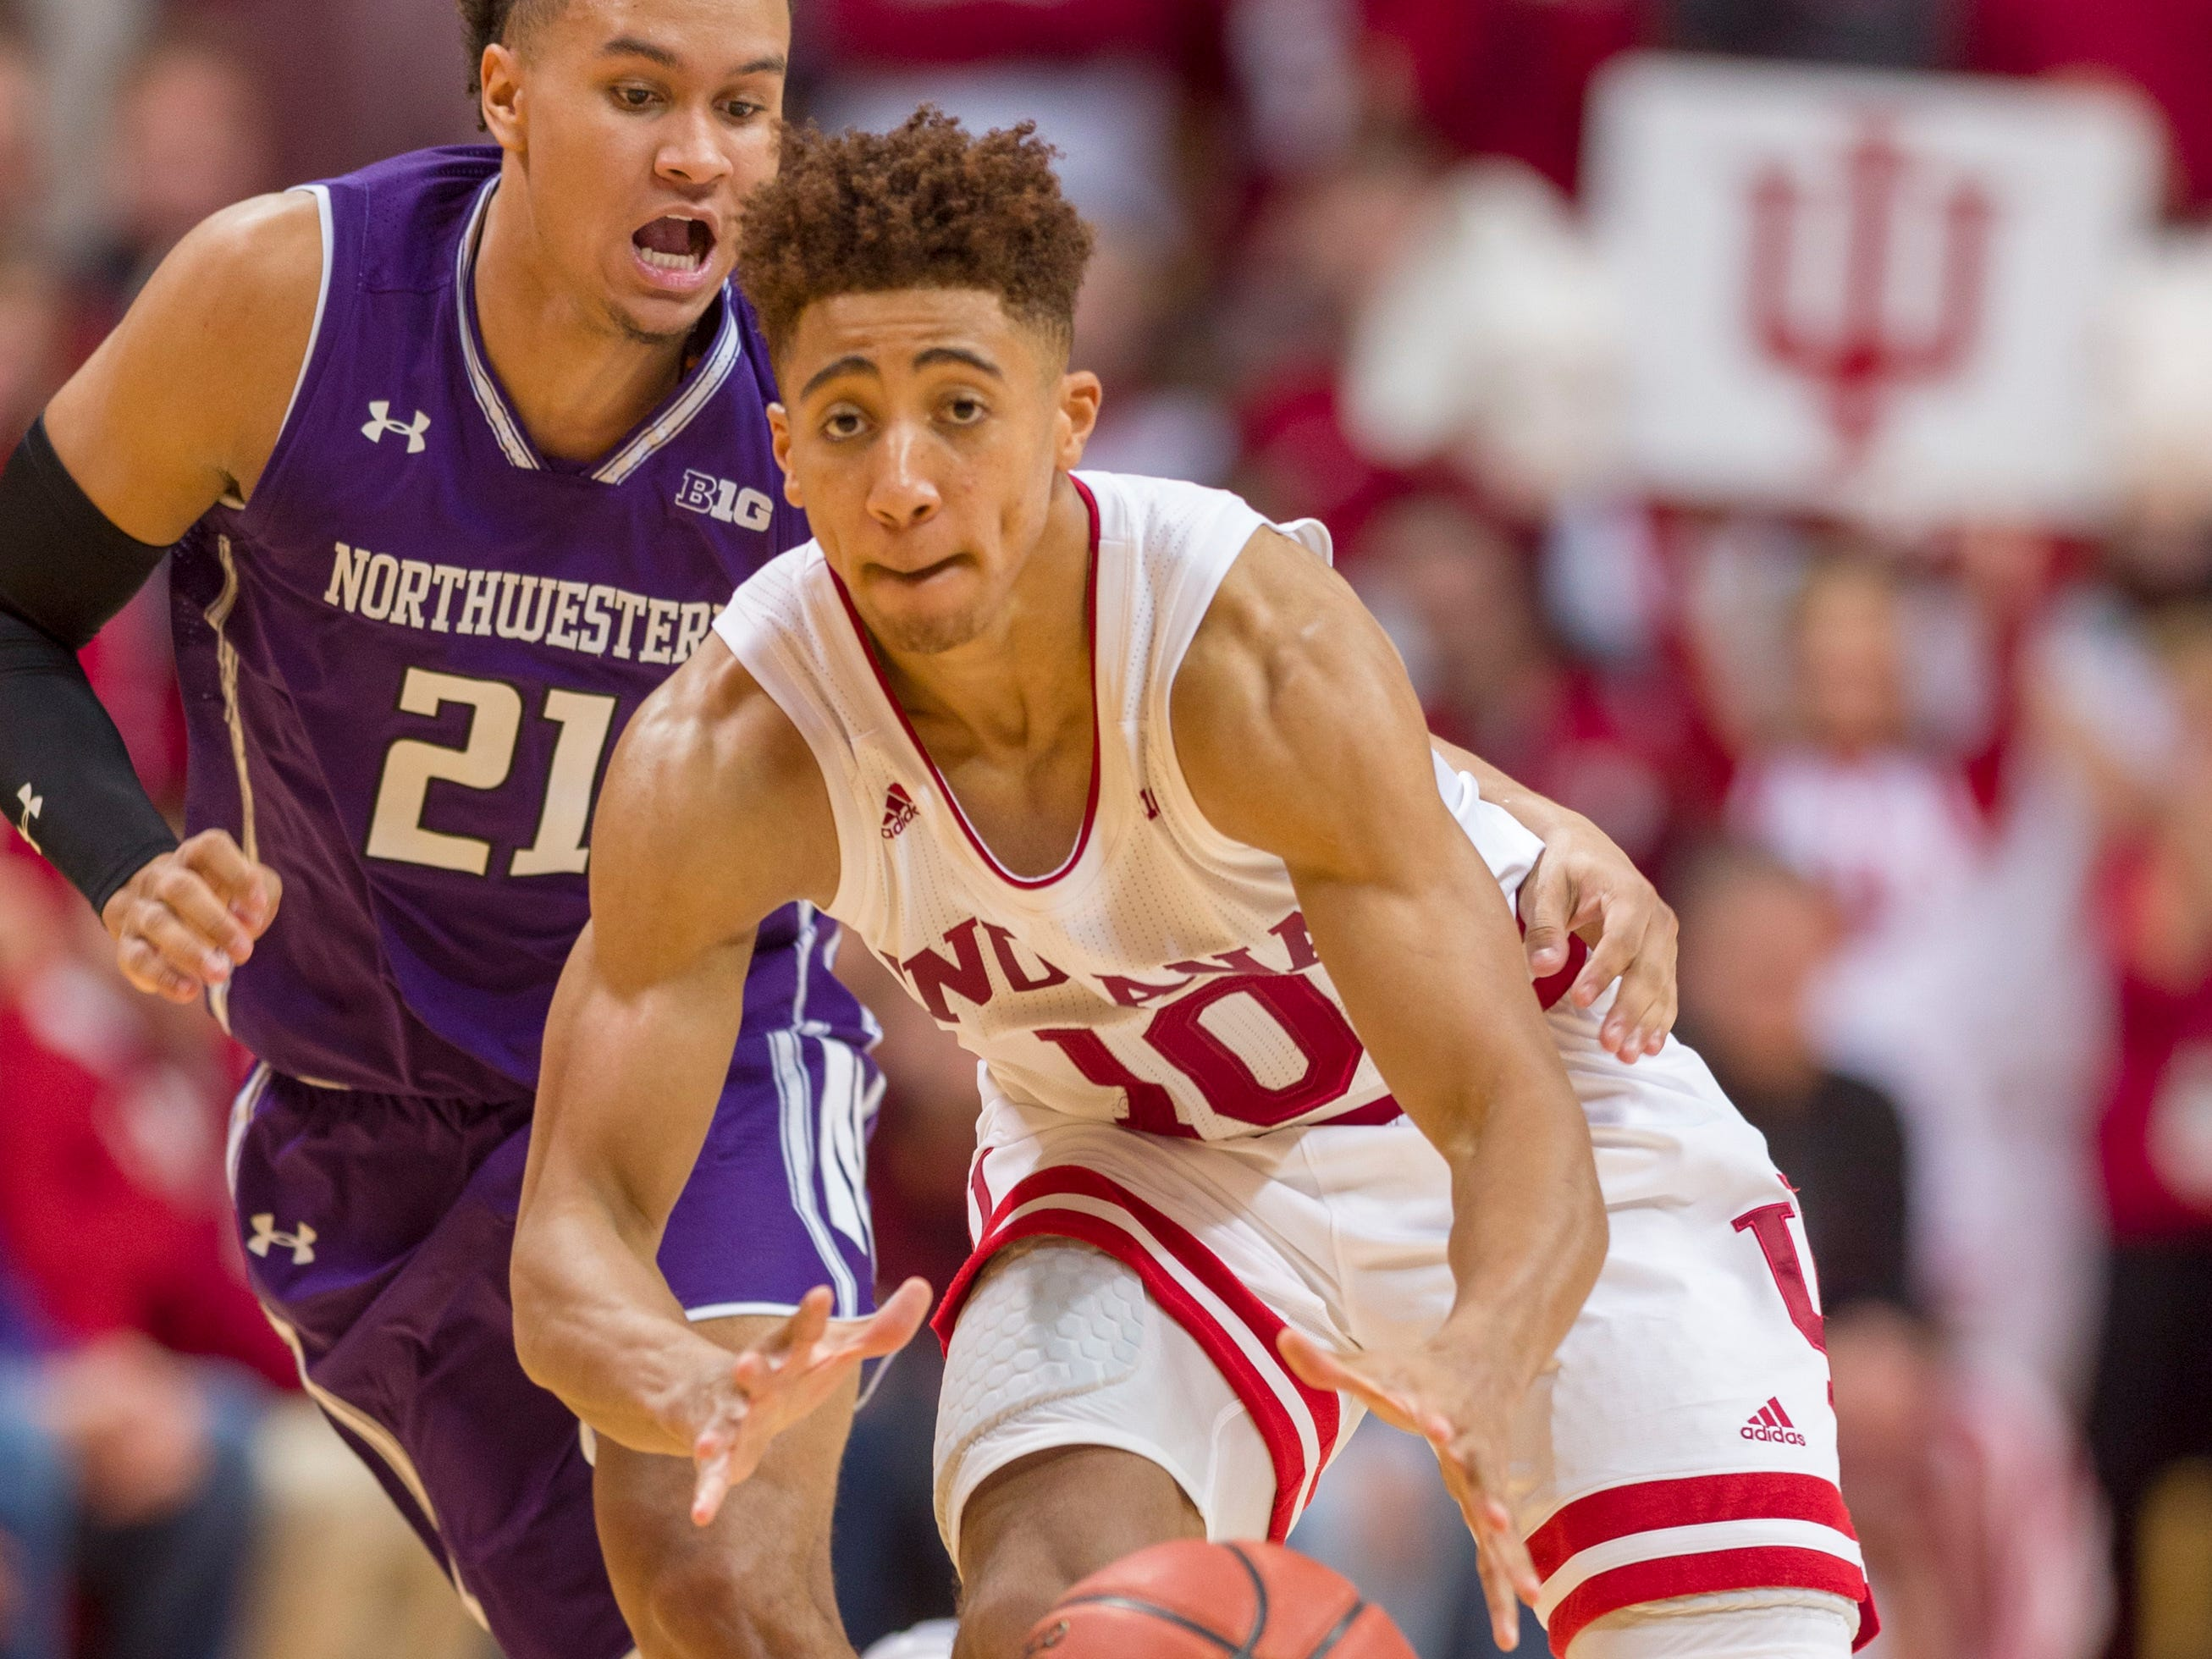 Indiana guard Rob Phinisee (10) makes a pass to a teammate after getting around the defense of Northwestern forward A.J. Turner (21) during the second half of an NCAA college basketball game Saturday, Dec. 1, 2018, in Bloomington, Ind. Indiana won 68-66. (AP Photo/Doug McSchooler)